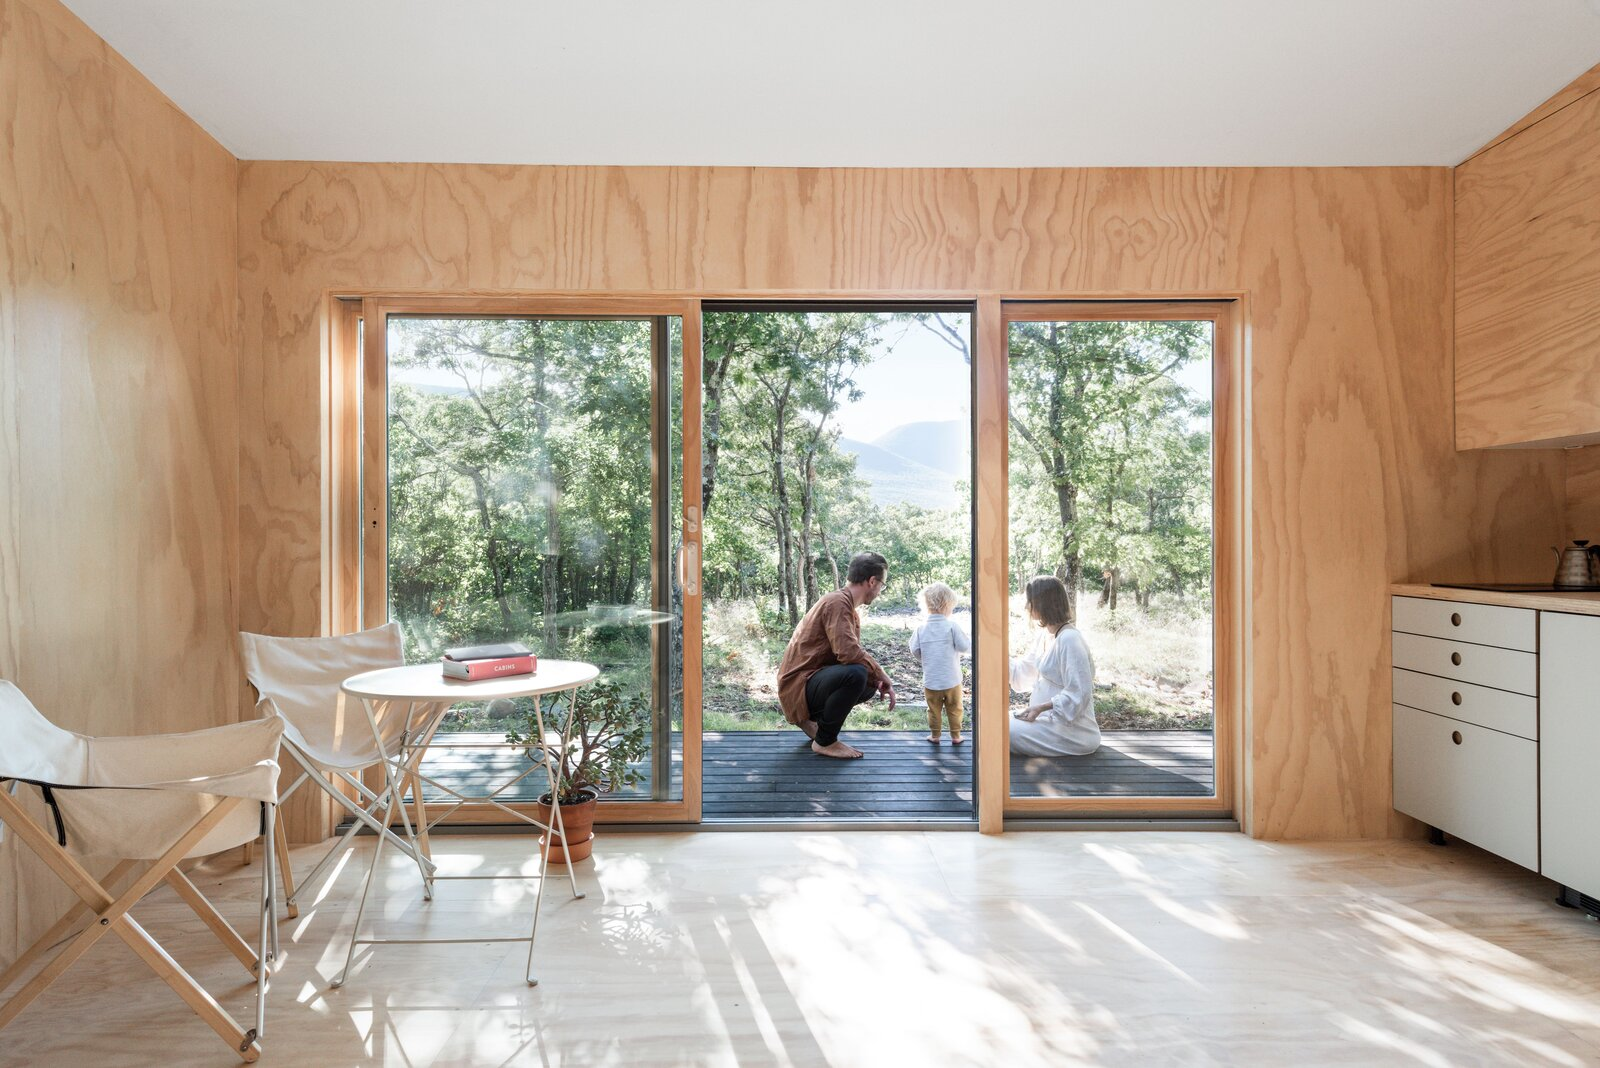 Living, Light Hardwood, Wood Burning, and Bar The family of three (soon to be four) uses the minimalist-inspired cabin in the Catskills as their peaceful weekend getaway. In the future they hope to build a larger home and turn the cabin into a guest house.  Living Bar Photos from The Cofounders of Den, a DIY Cabin Startup, Share a Peek Into Their Catskills Retreat